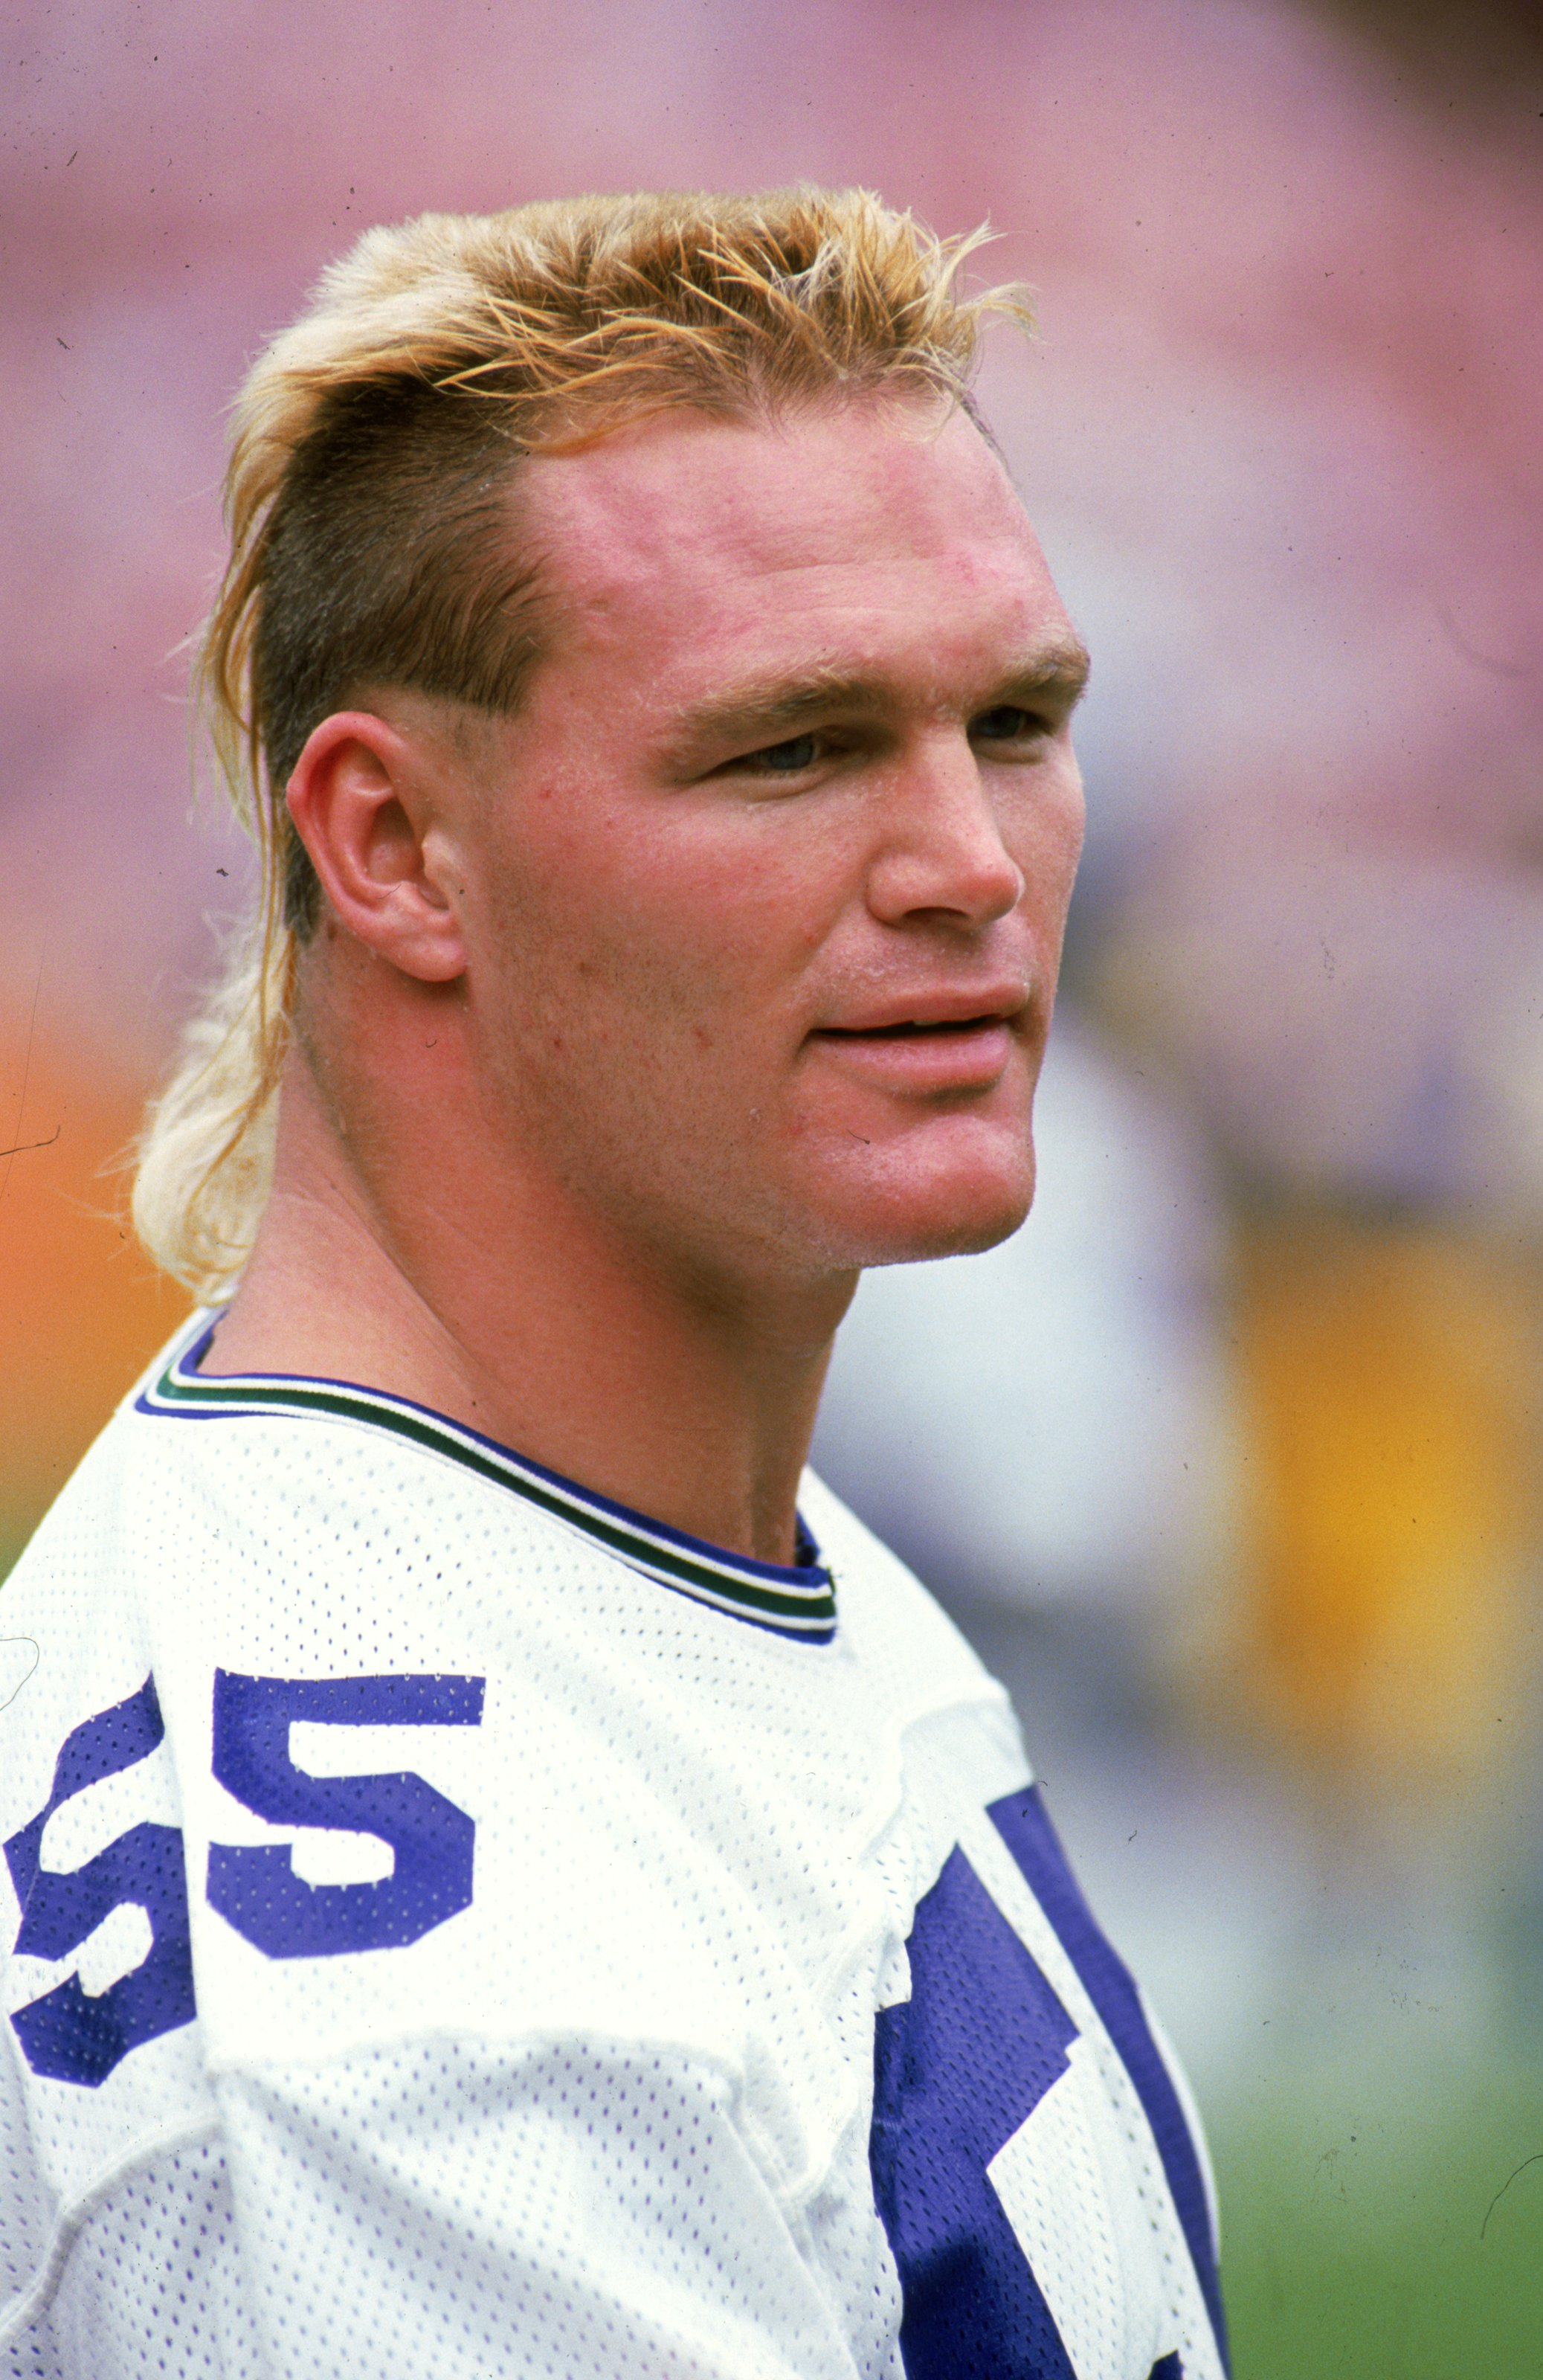 23 Oct 1988: A close up of Brian Bosworth #55 of the Seattle Seahawks as he looks on during the game against the Los Angeles Rams. The Rams defeated the Seahawks 31-10.